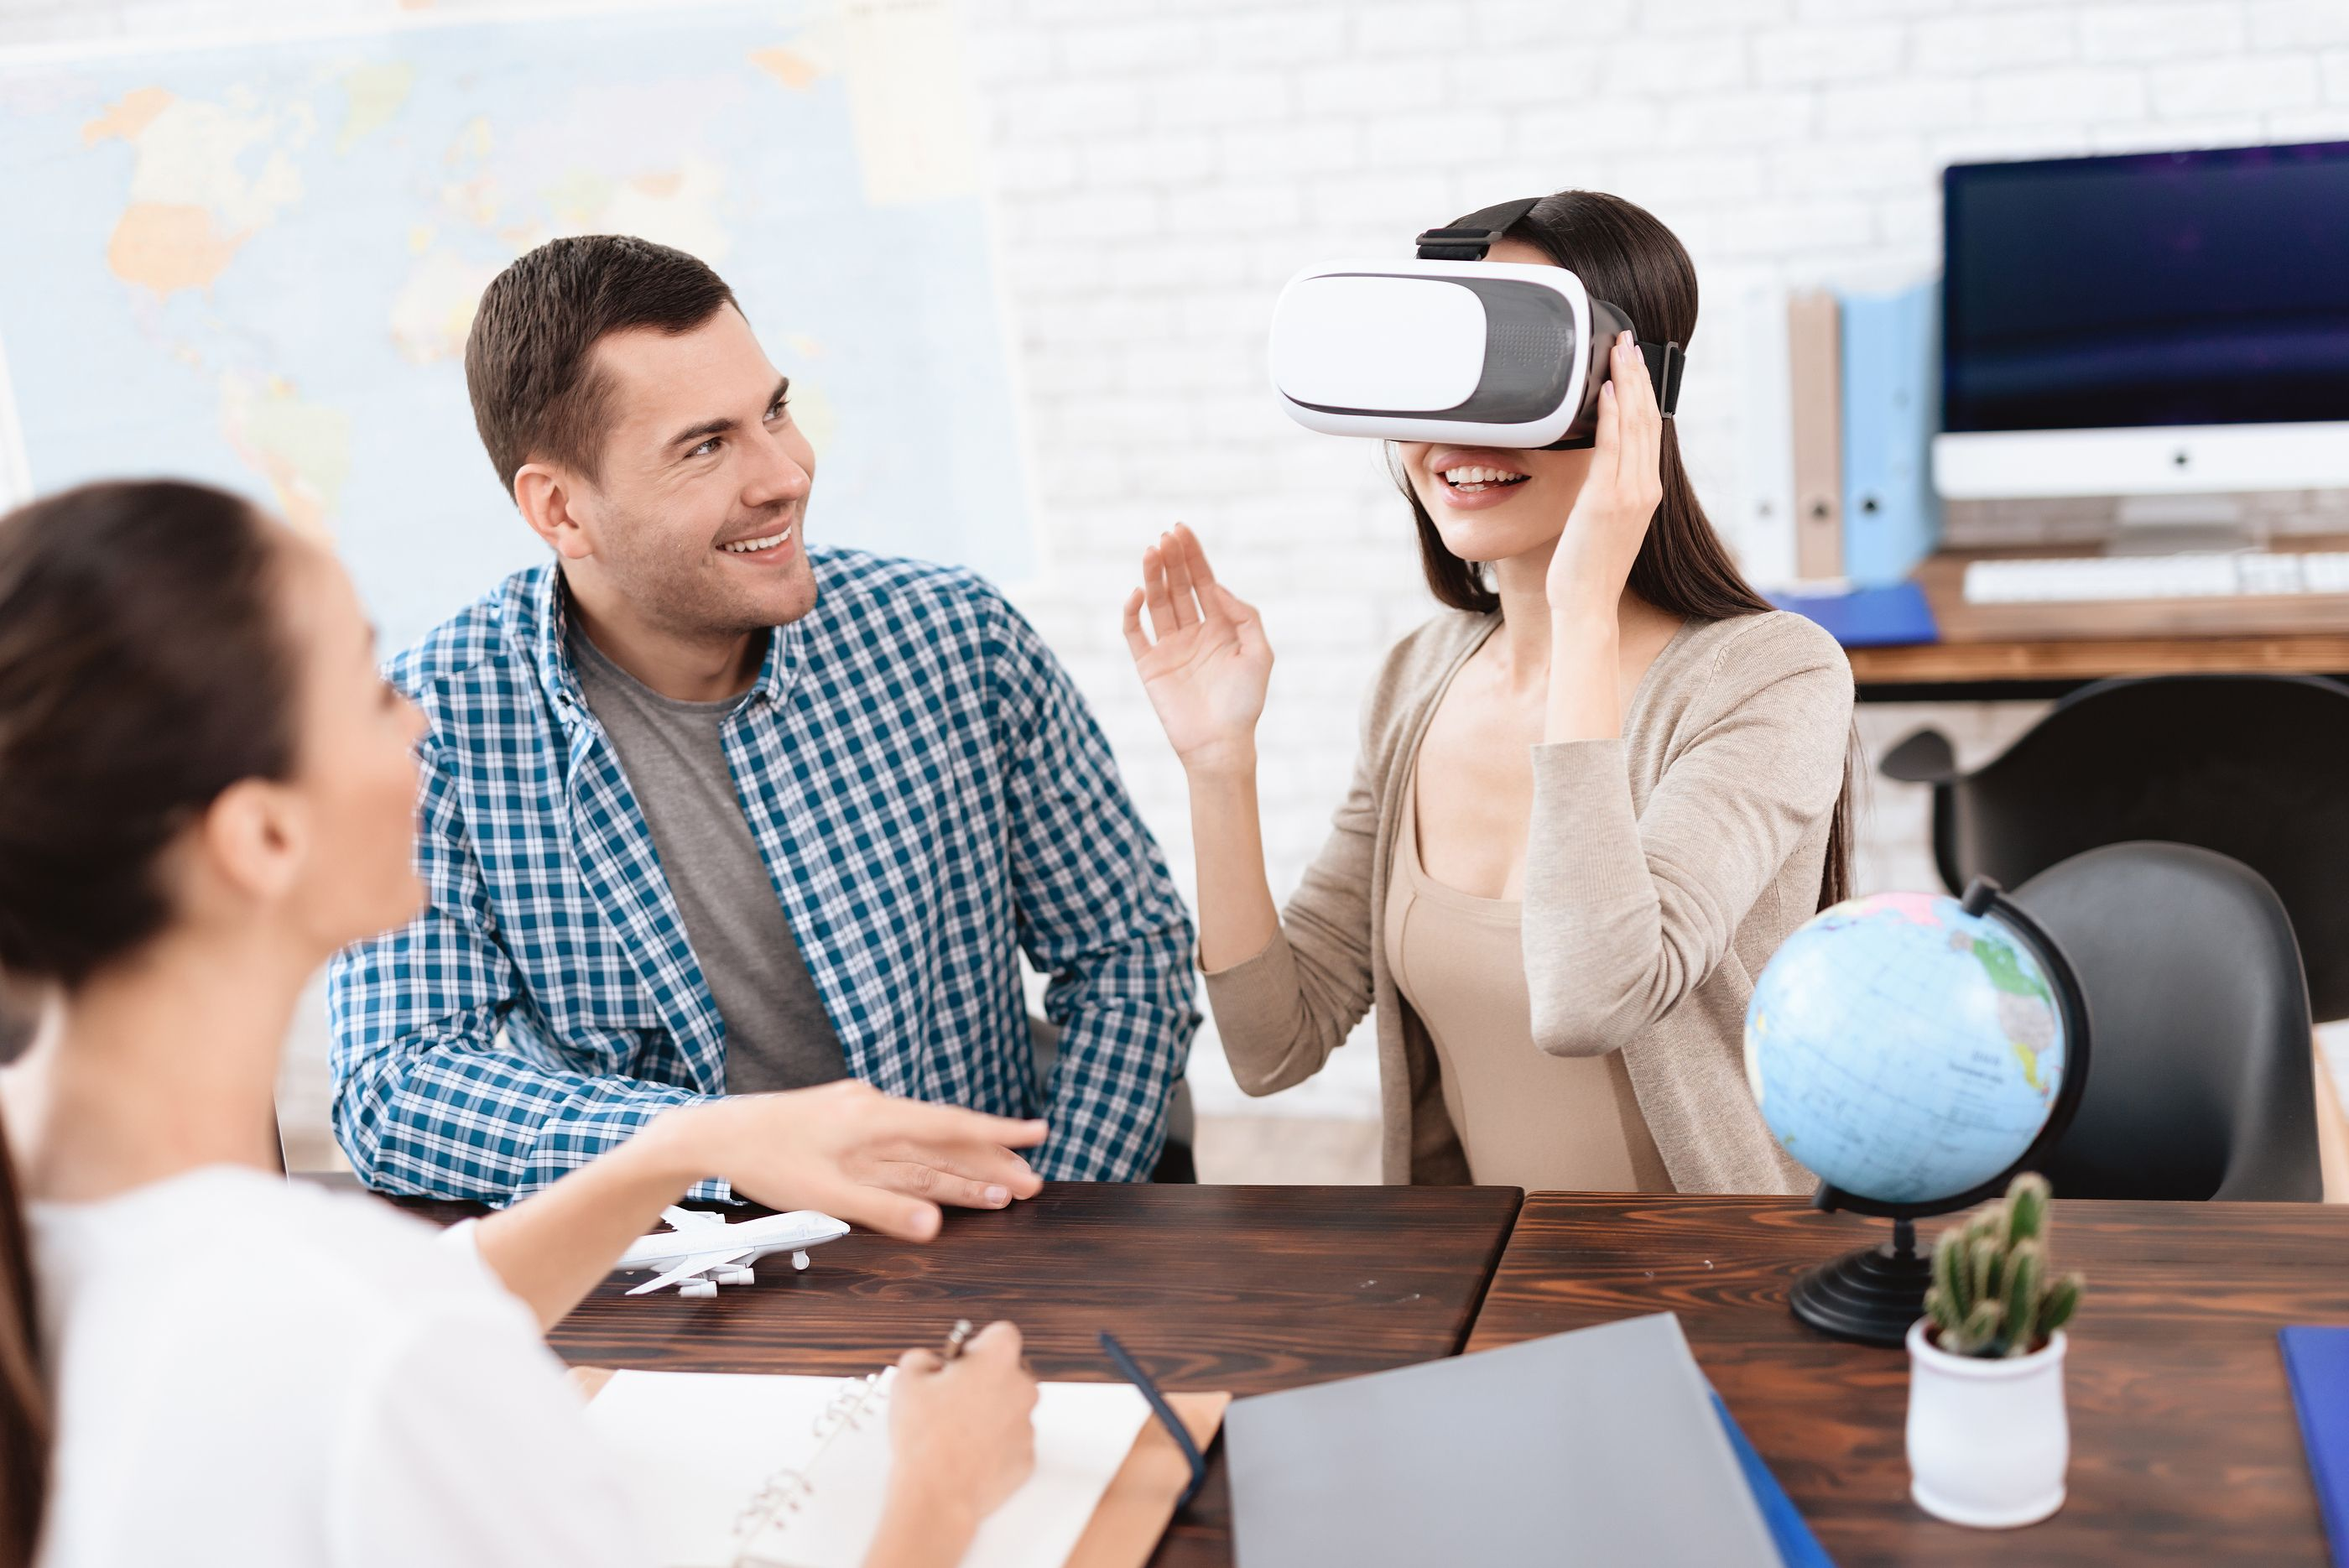 Benefits of Virtual Reality in the Tourism and Travel industry